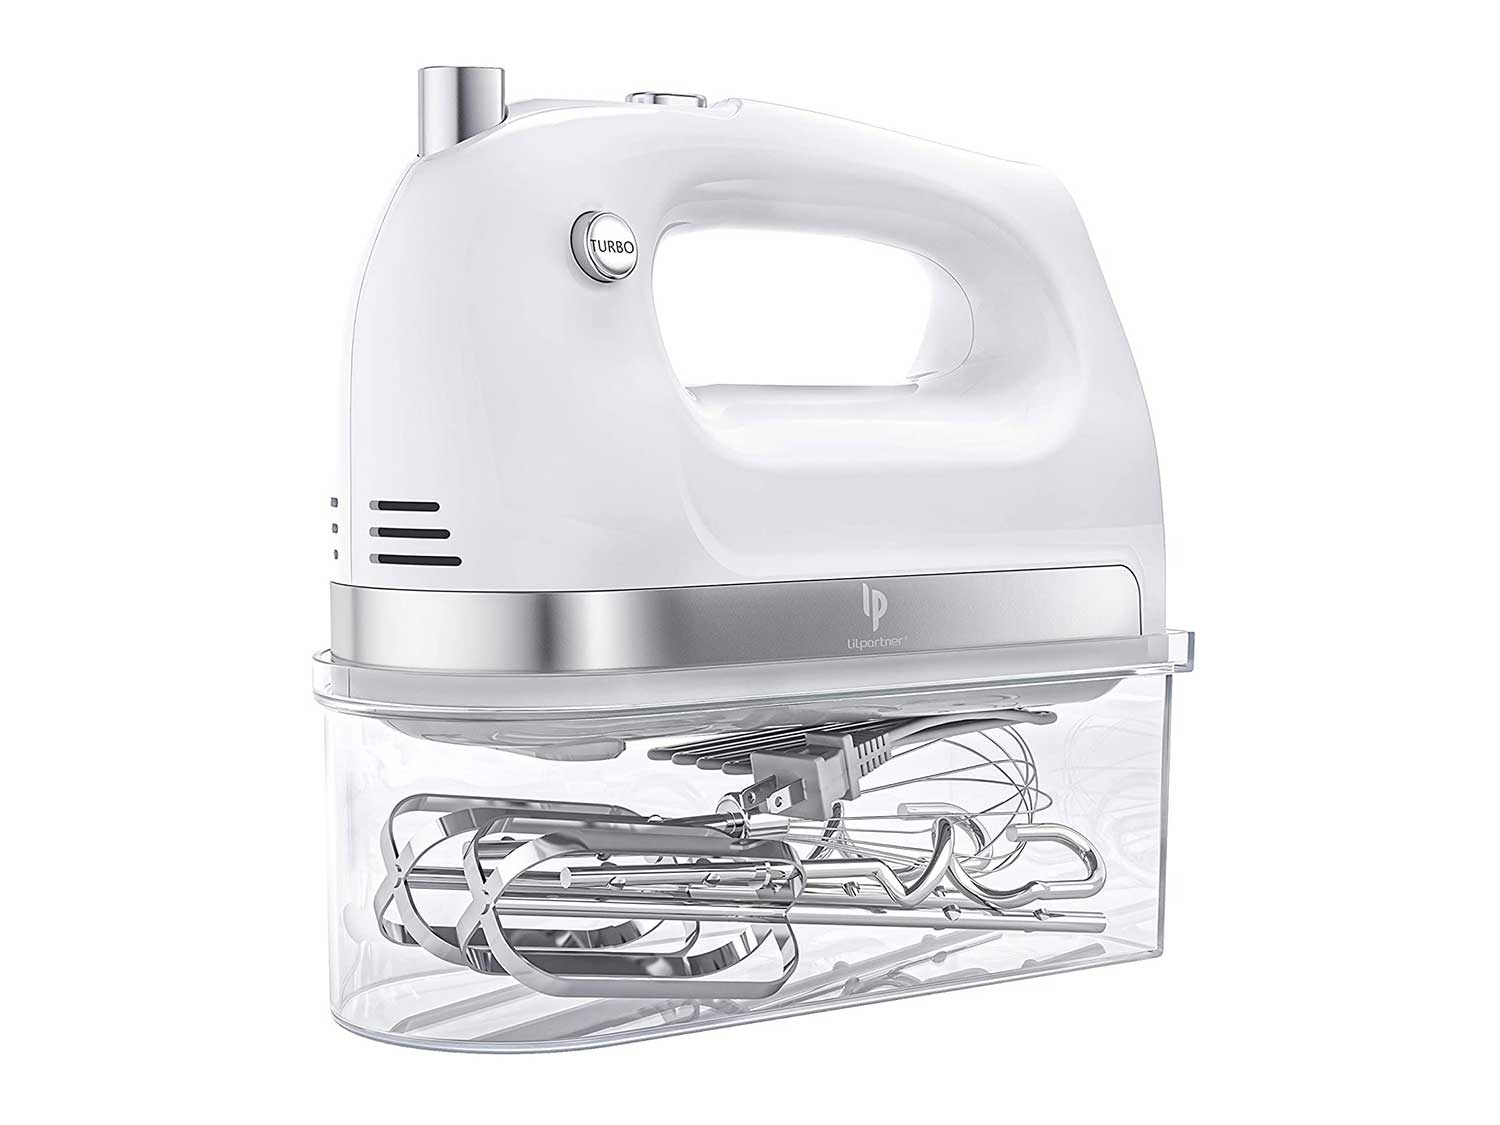 LILPARTNER Hand Mixer Electric, 400w Ultra Power Kitchen Hand Mixer With 2x5-Speed(Turbo Boost, Automatic Speed), Storage Box & 5 Stainless Steel Accessories for Cream, Cake, White